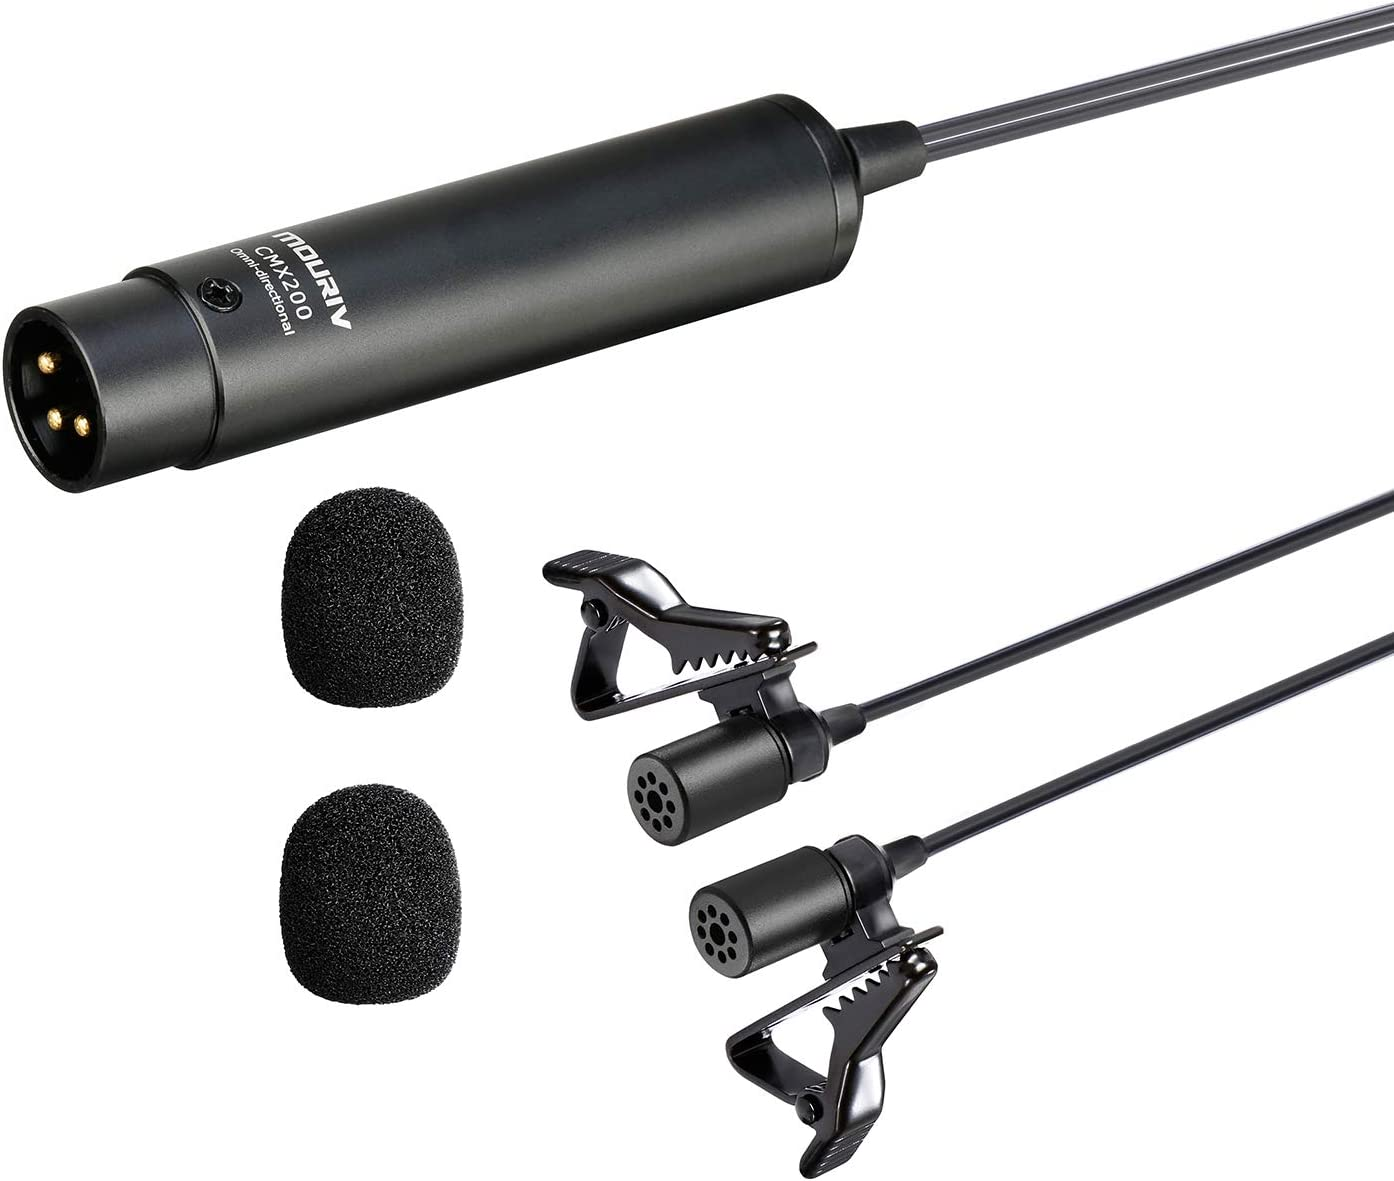 20ft Dual Max 71% OFF Head XLR Lavalier Microphone MOURIV P Omni-directional Chicago Mall